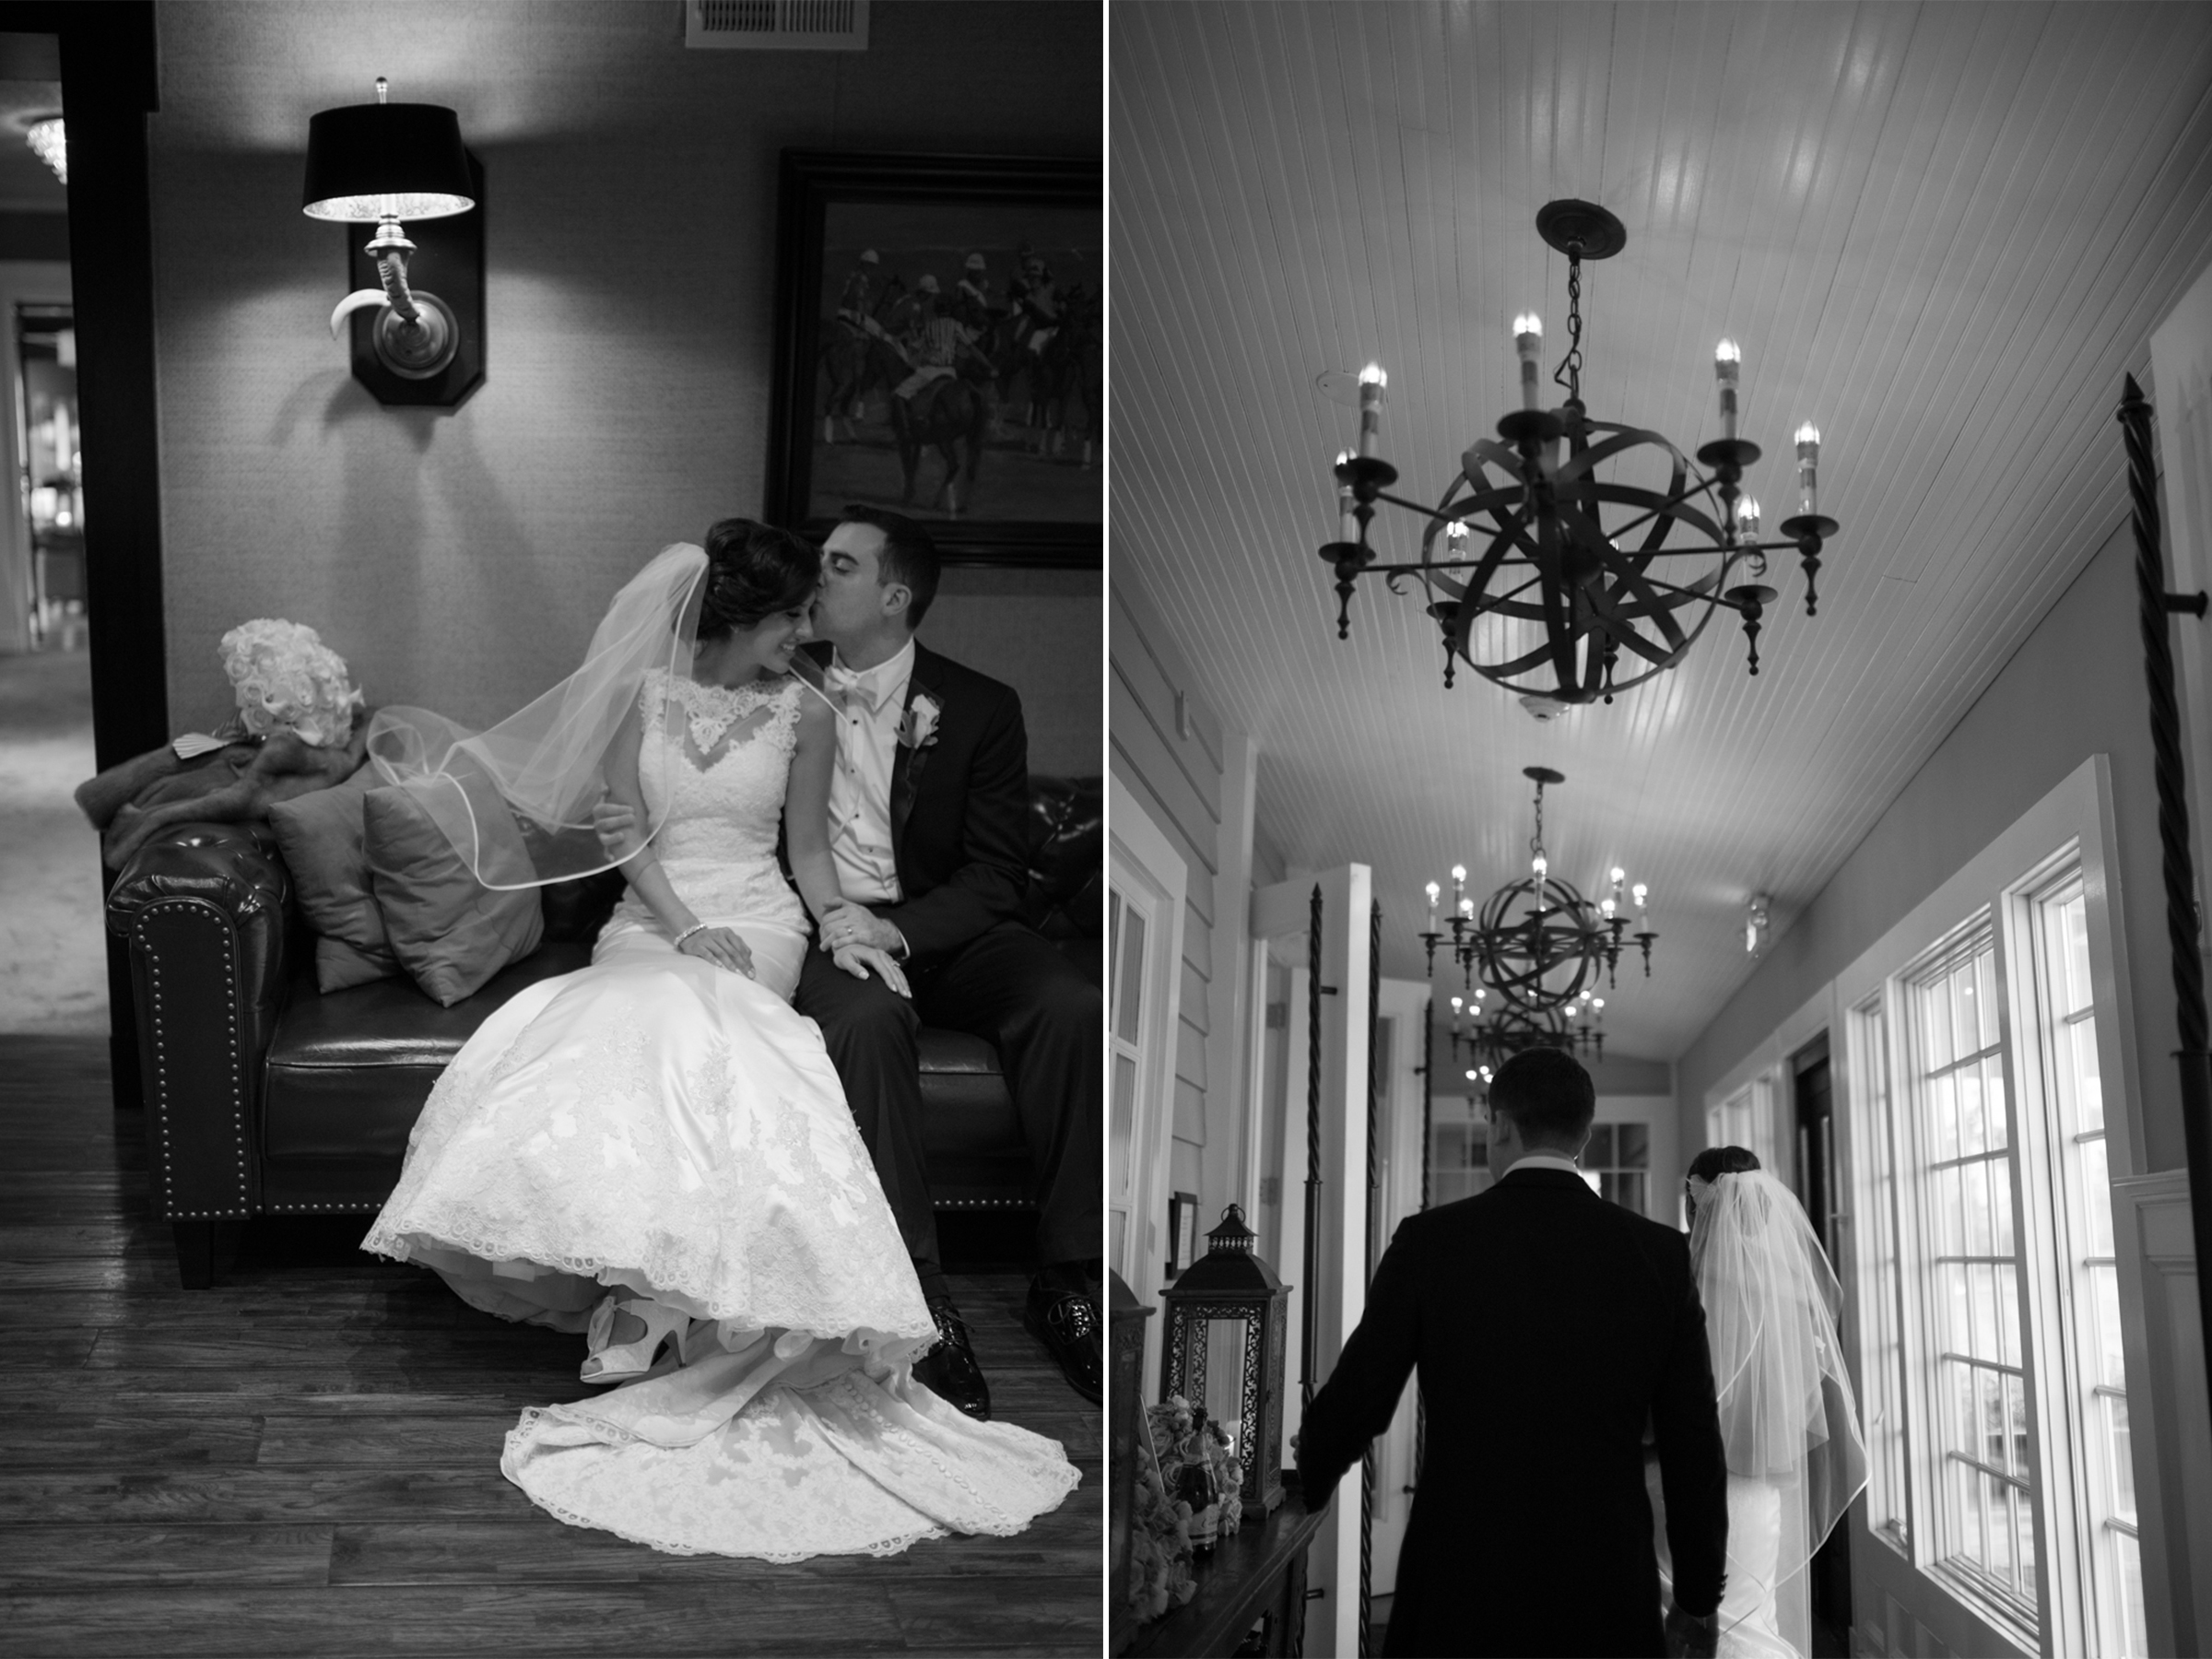 Michelle+Joe- Bridal Portraits in Lounge Black and White - Ryland Inn Winter Wedding - New Jersey - Olivia Christina Photo.jpg